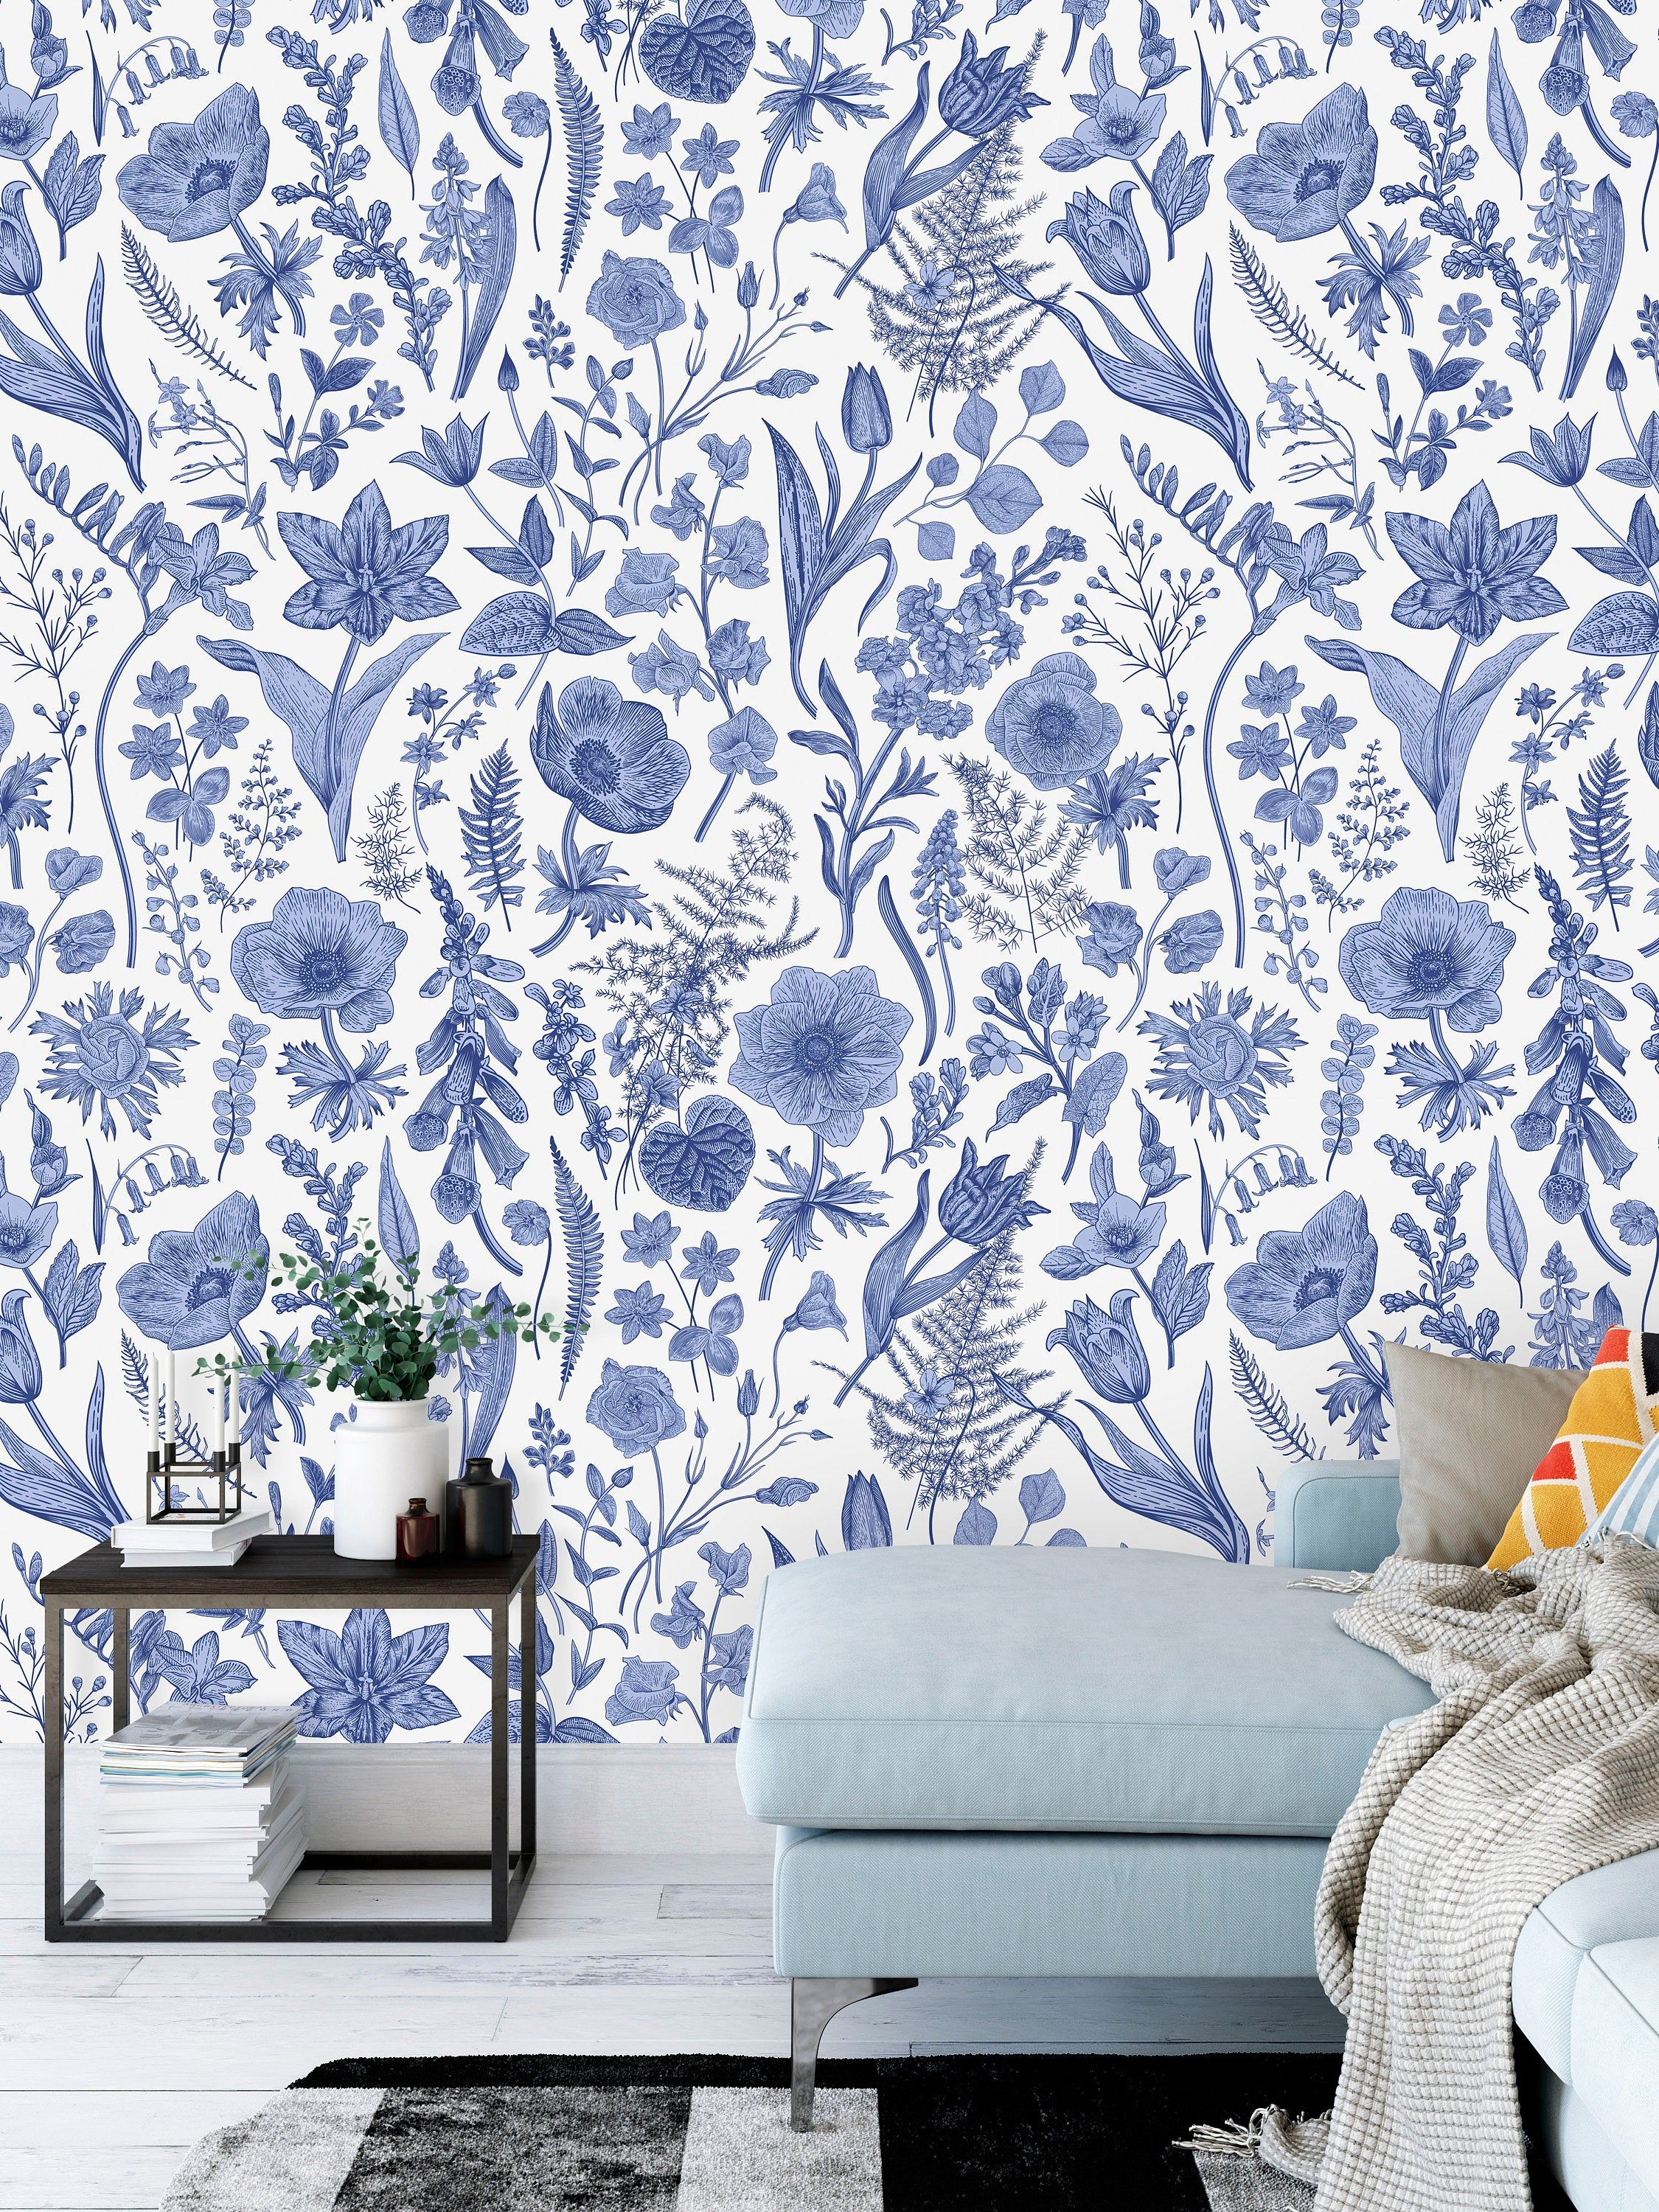 Bring Beauty To Your Home With Wallpapers From Greenplanetwall We